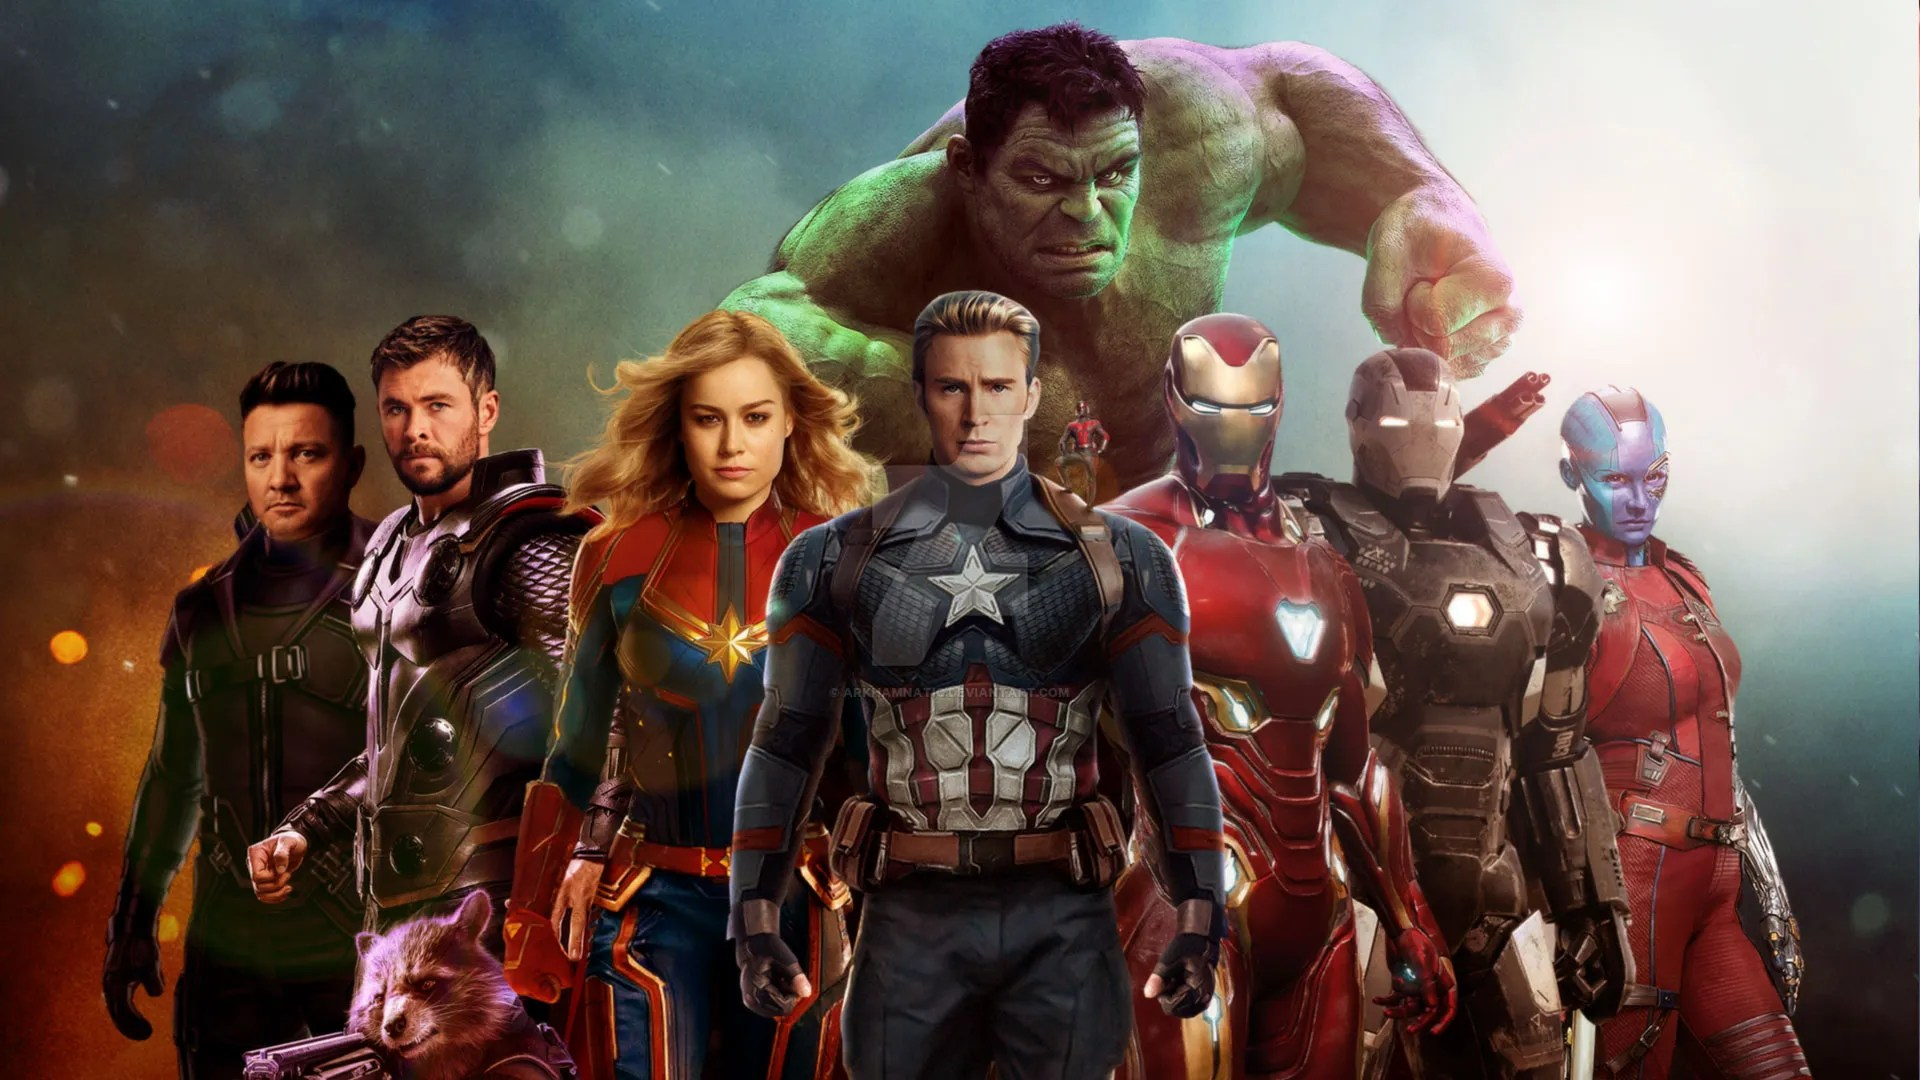 Movel Moveis Marvel Movies In 2019 Release Dates Your Guide To The Marvel